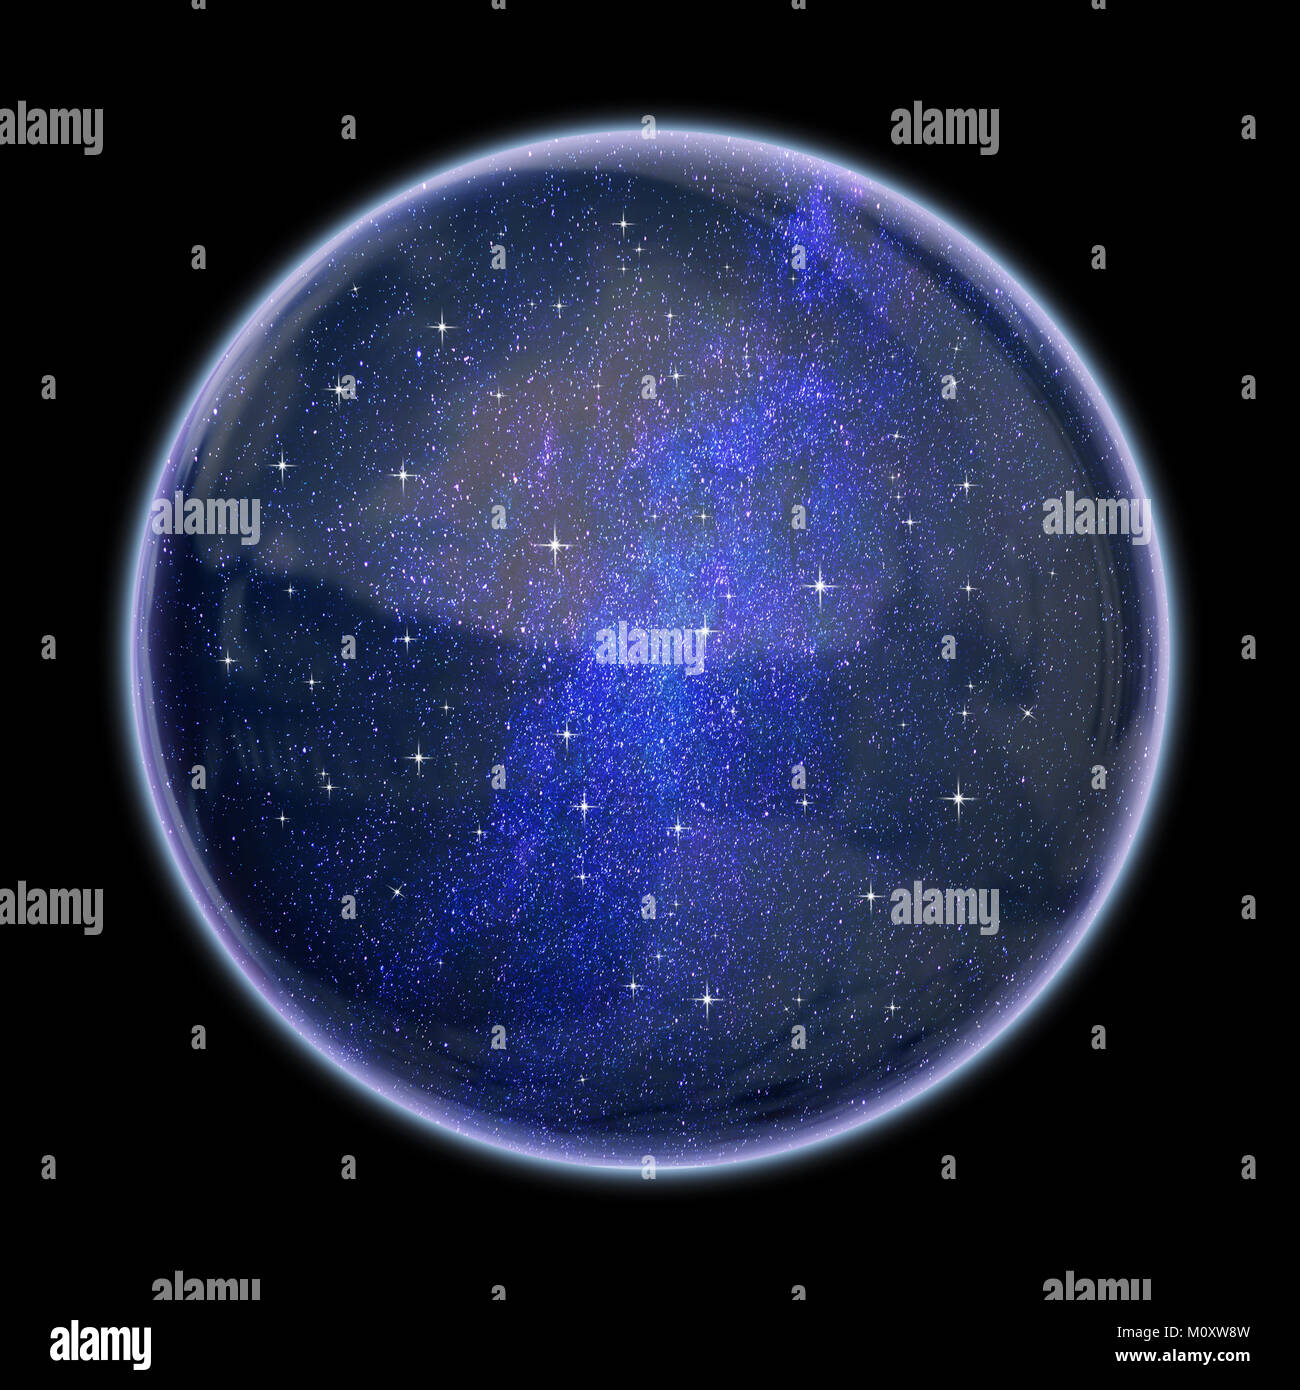 Universe in a bubble - Stock Image